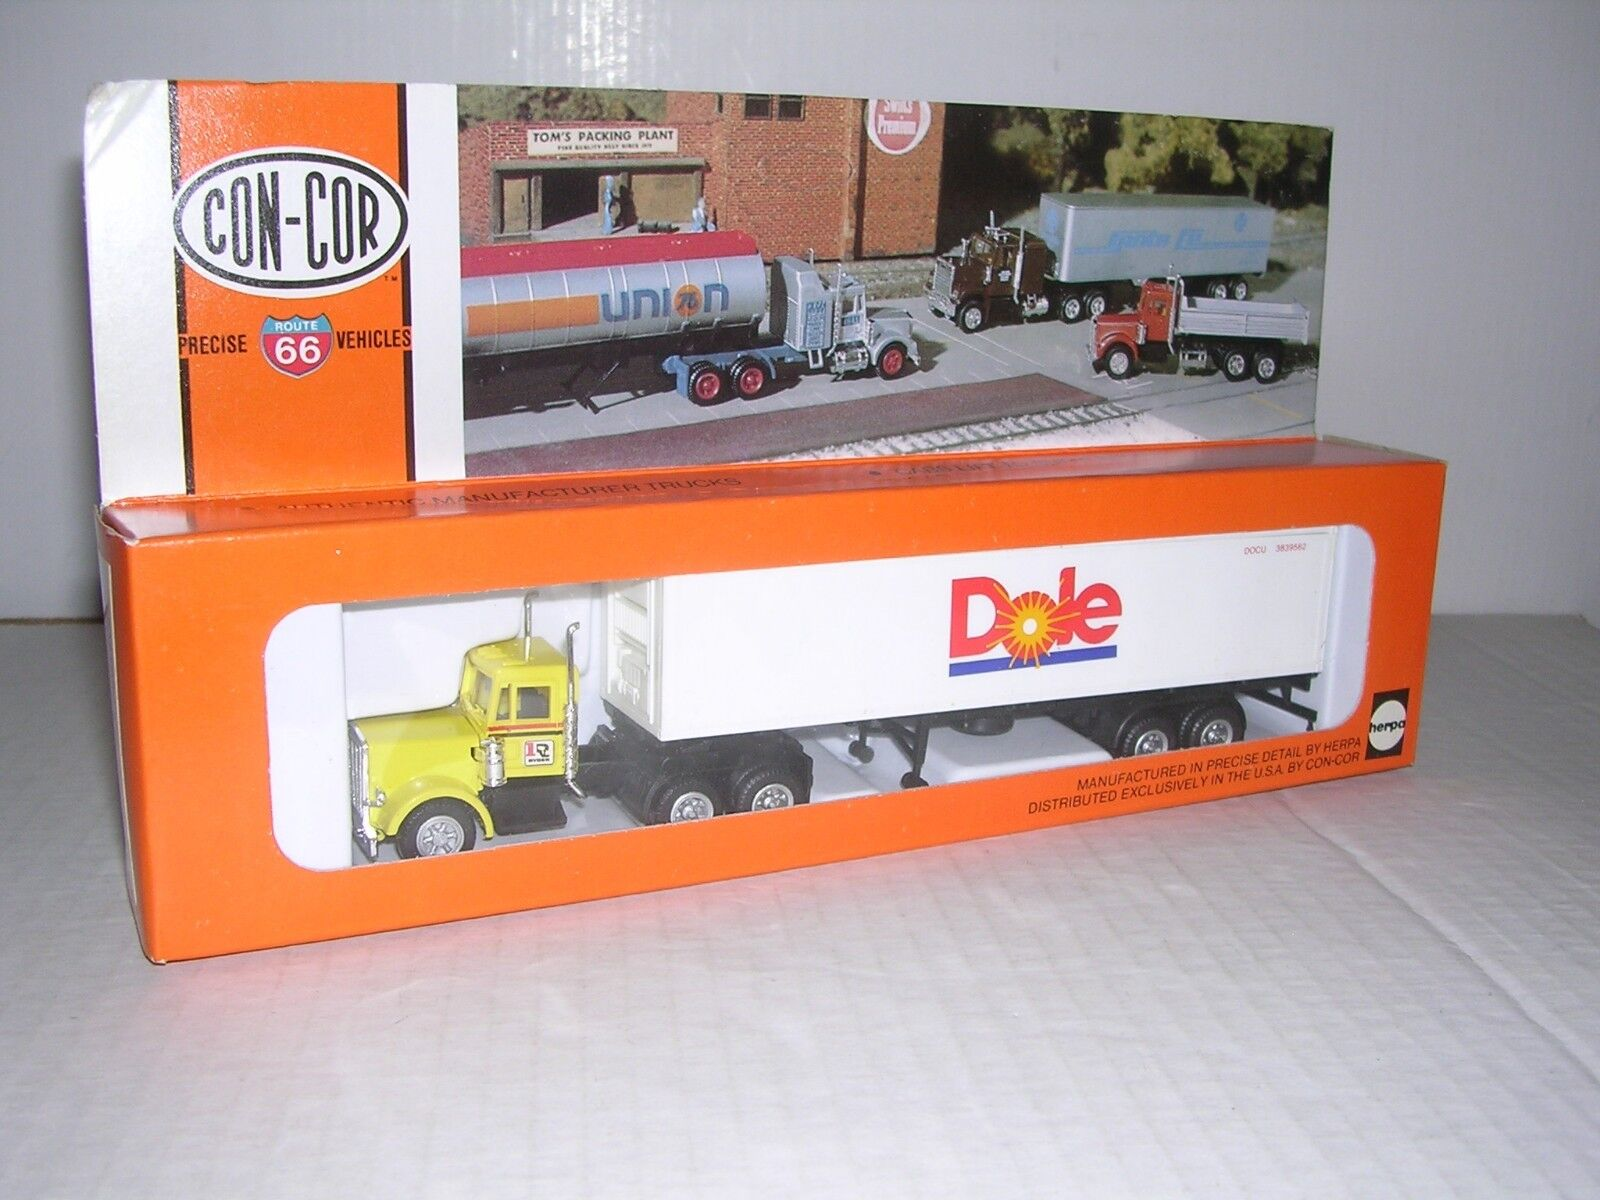 CON-COR Ryder Kenworth 10 Wheel Cab w 40' Container  Dole  Built-up H.O.